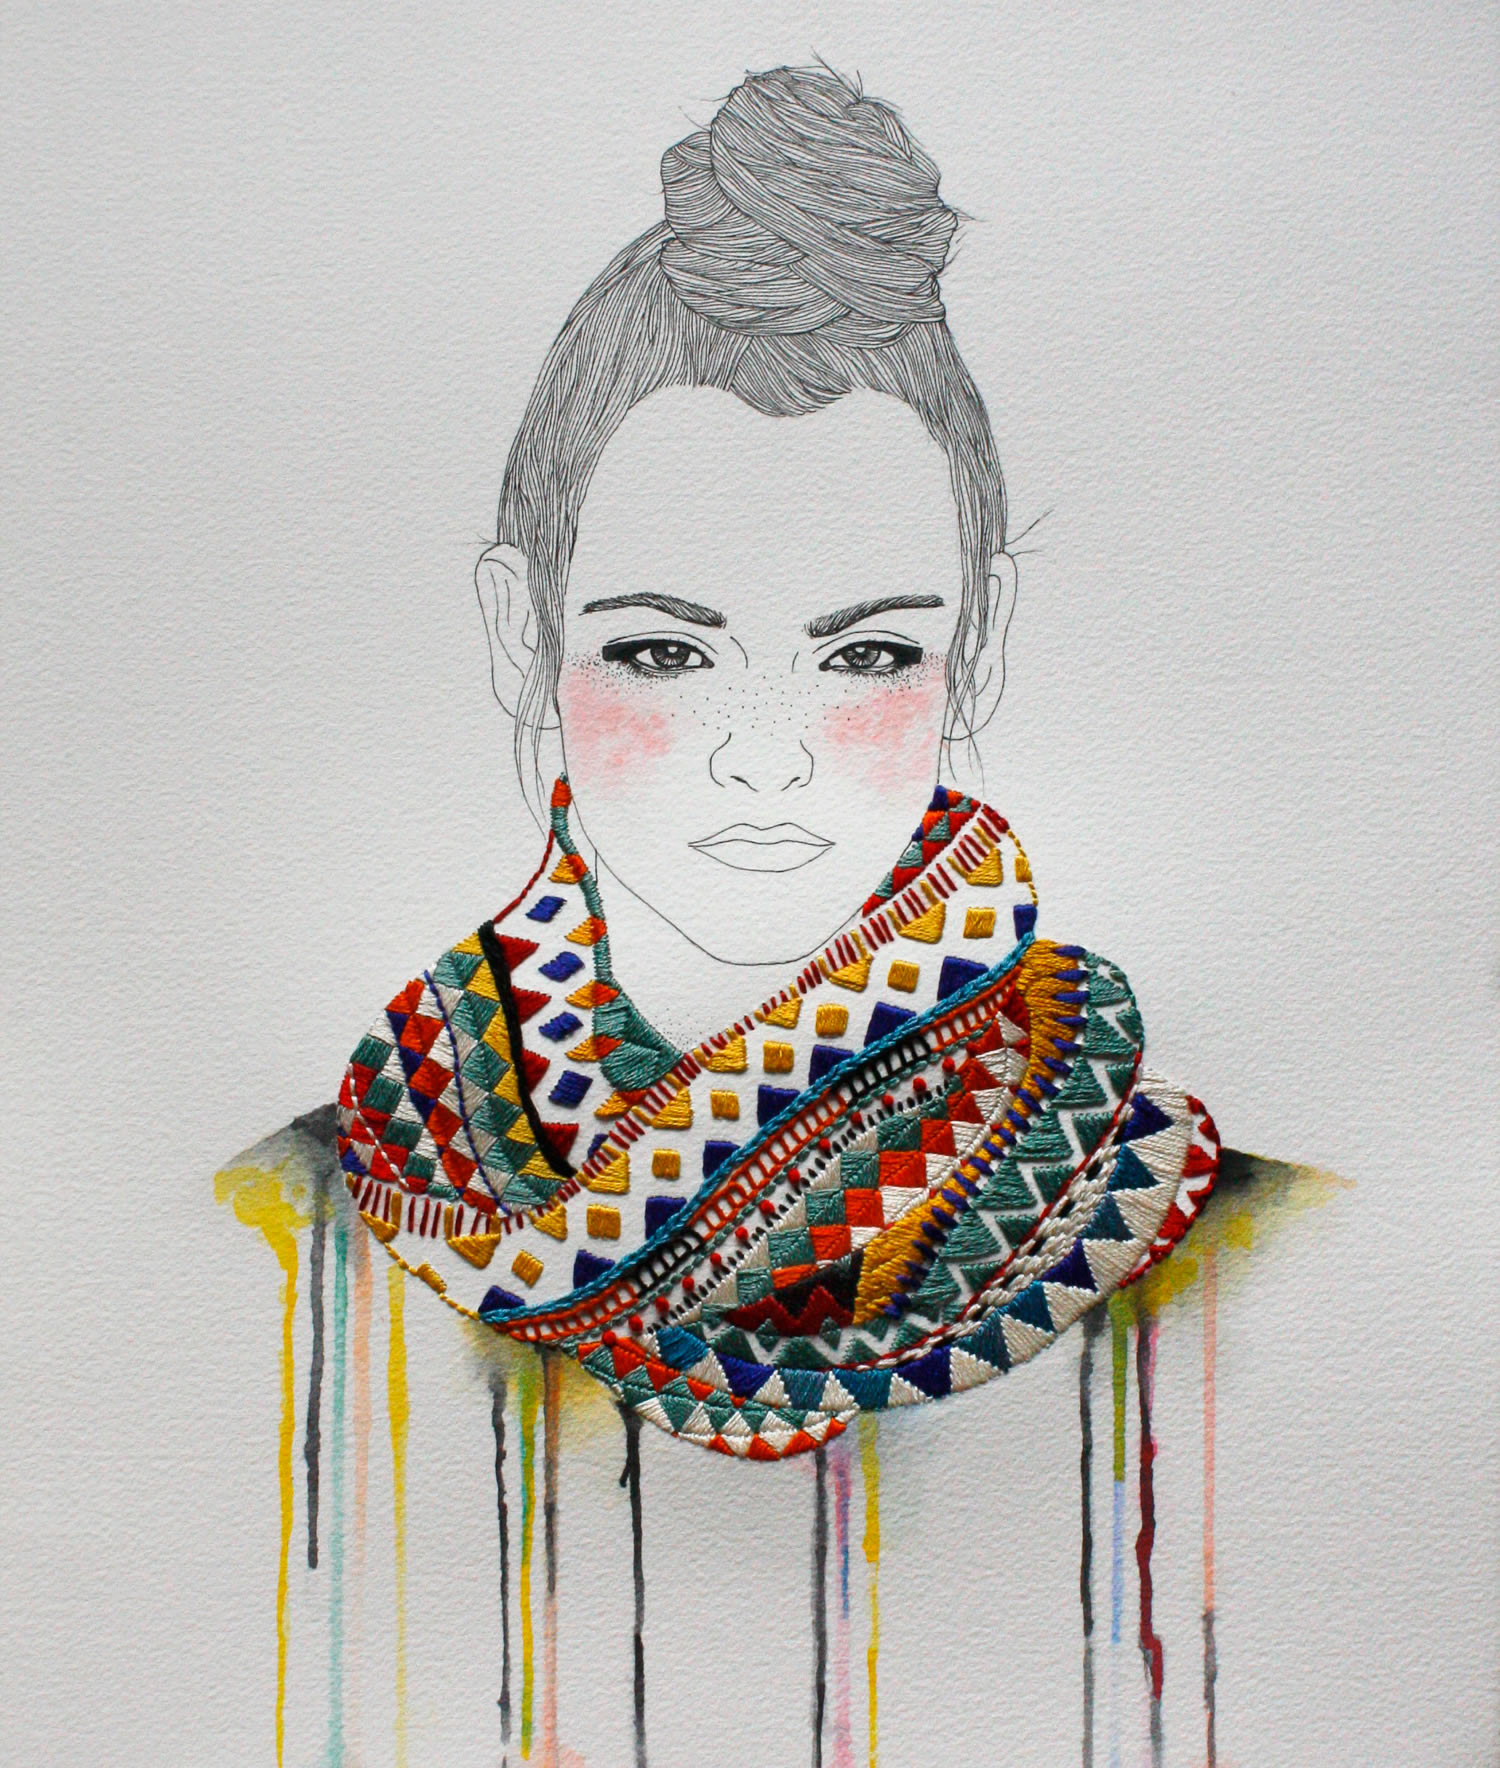 Embroidery on paper gives Izziyana Suhaimi's drawings a three-dimensional feel.